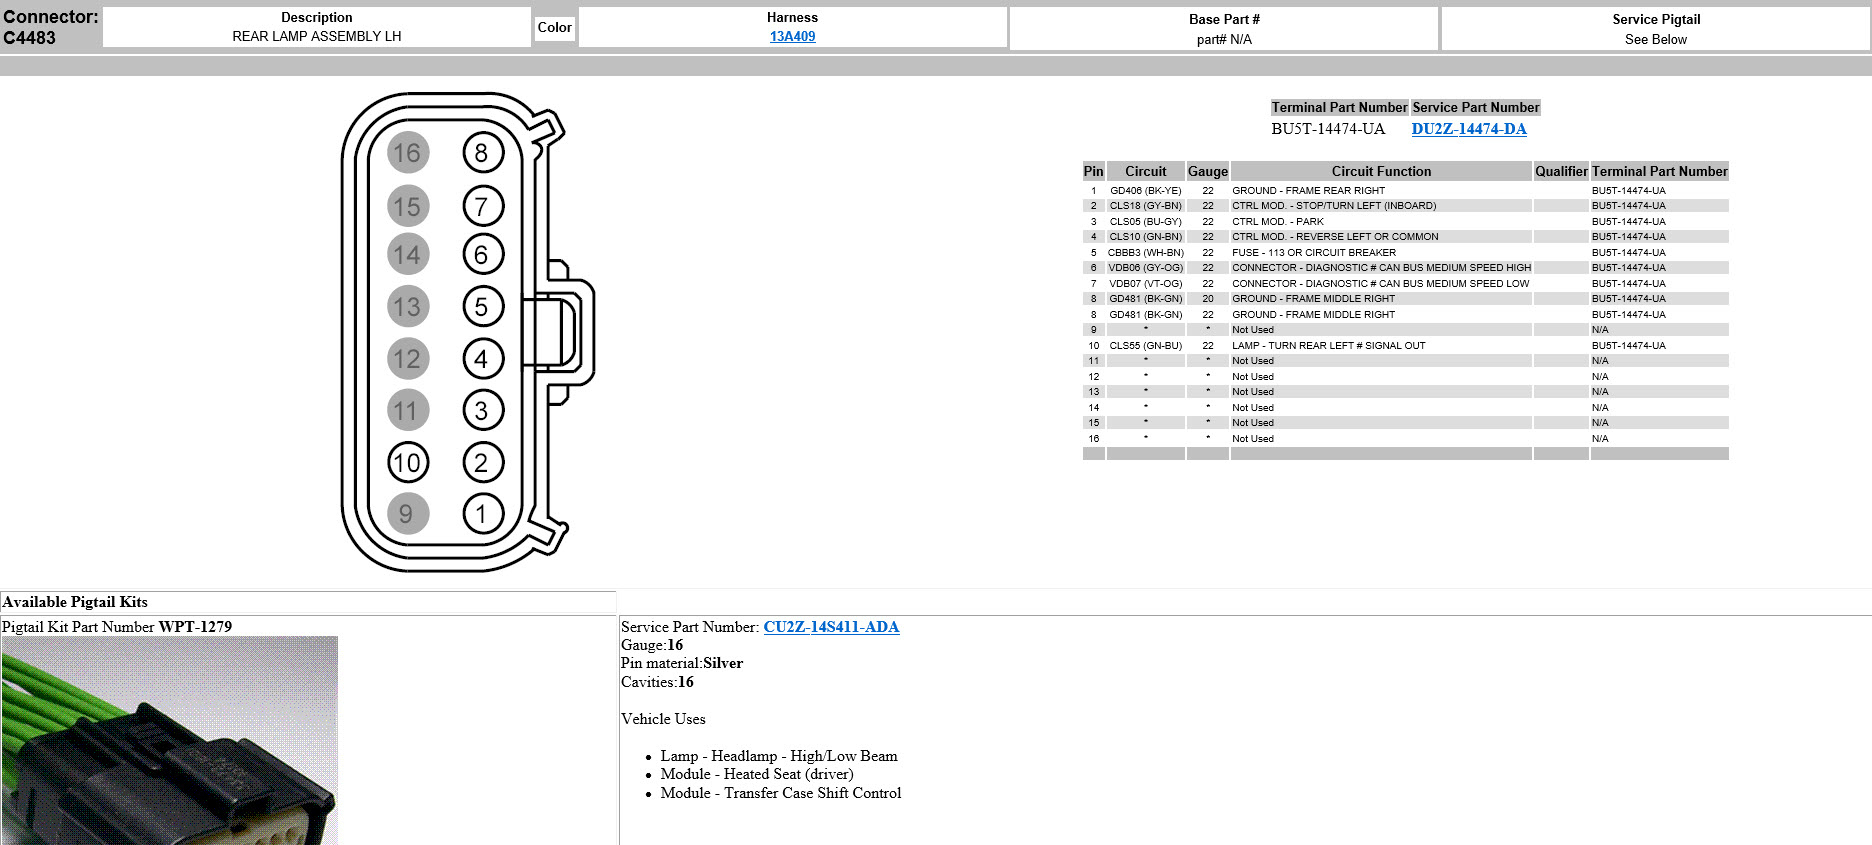 Led & Bliss Tail Light Wiring Diagram? - Ford F150 Forum - Community - Tail Light Wiring Diagram